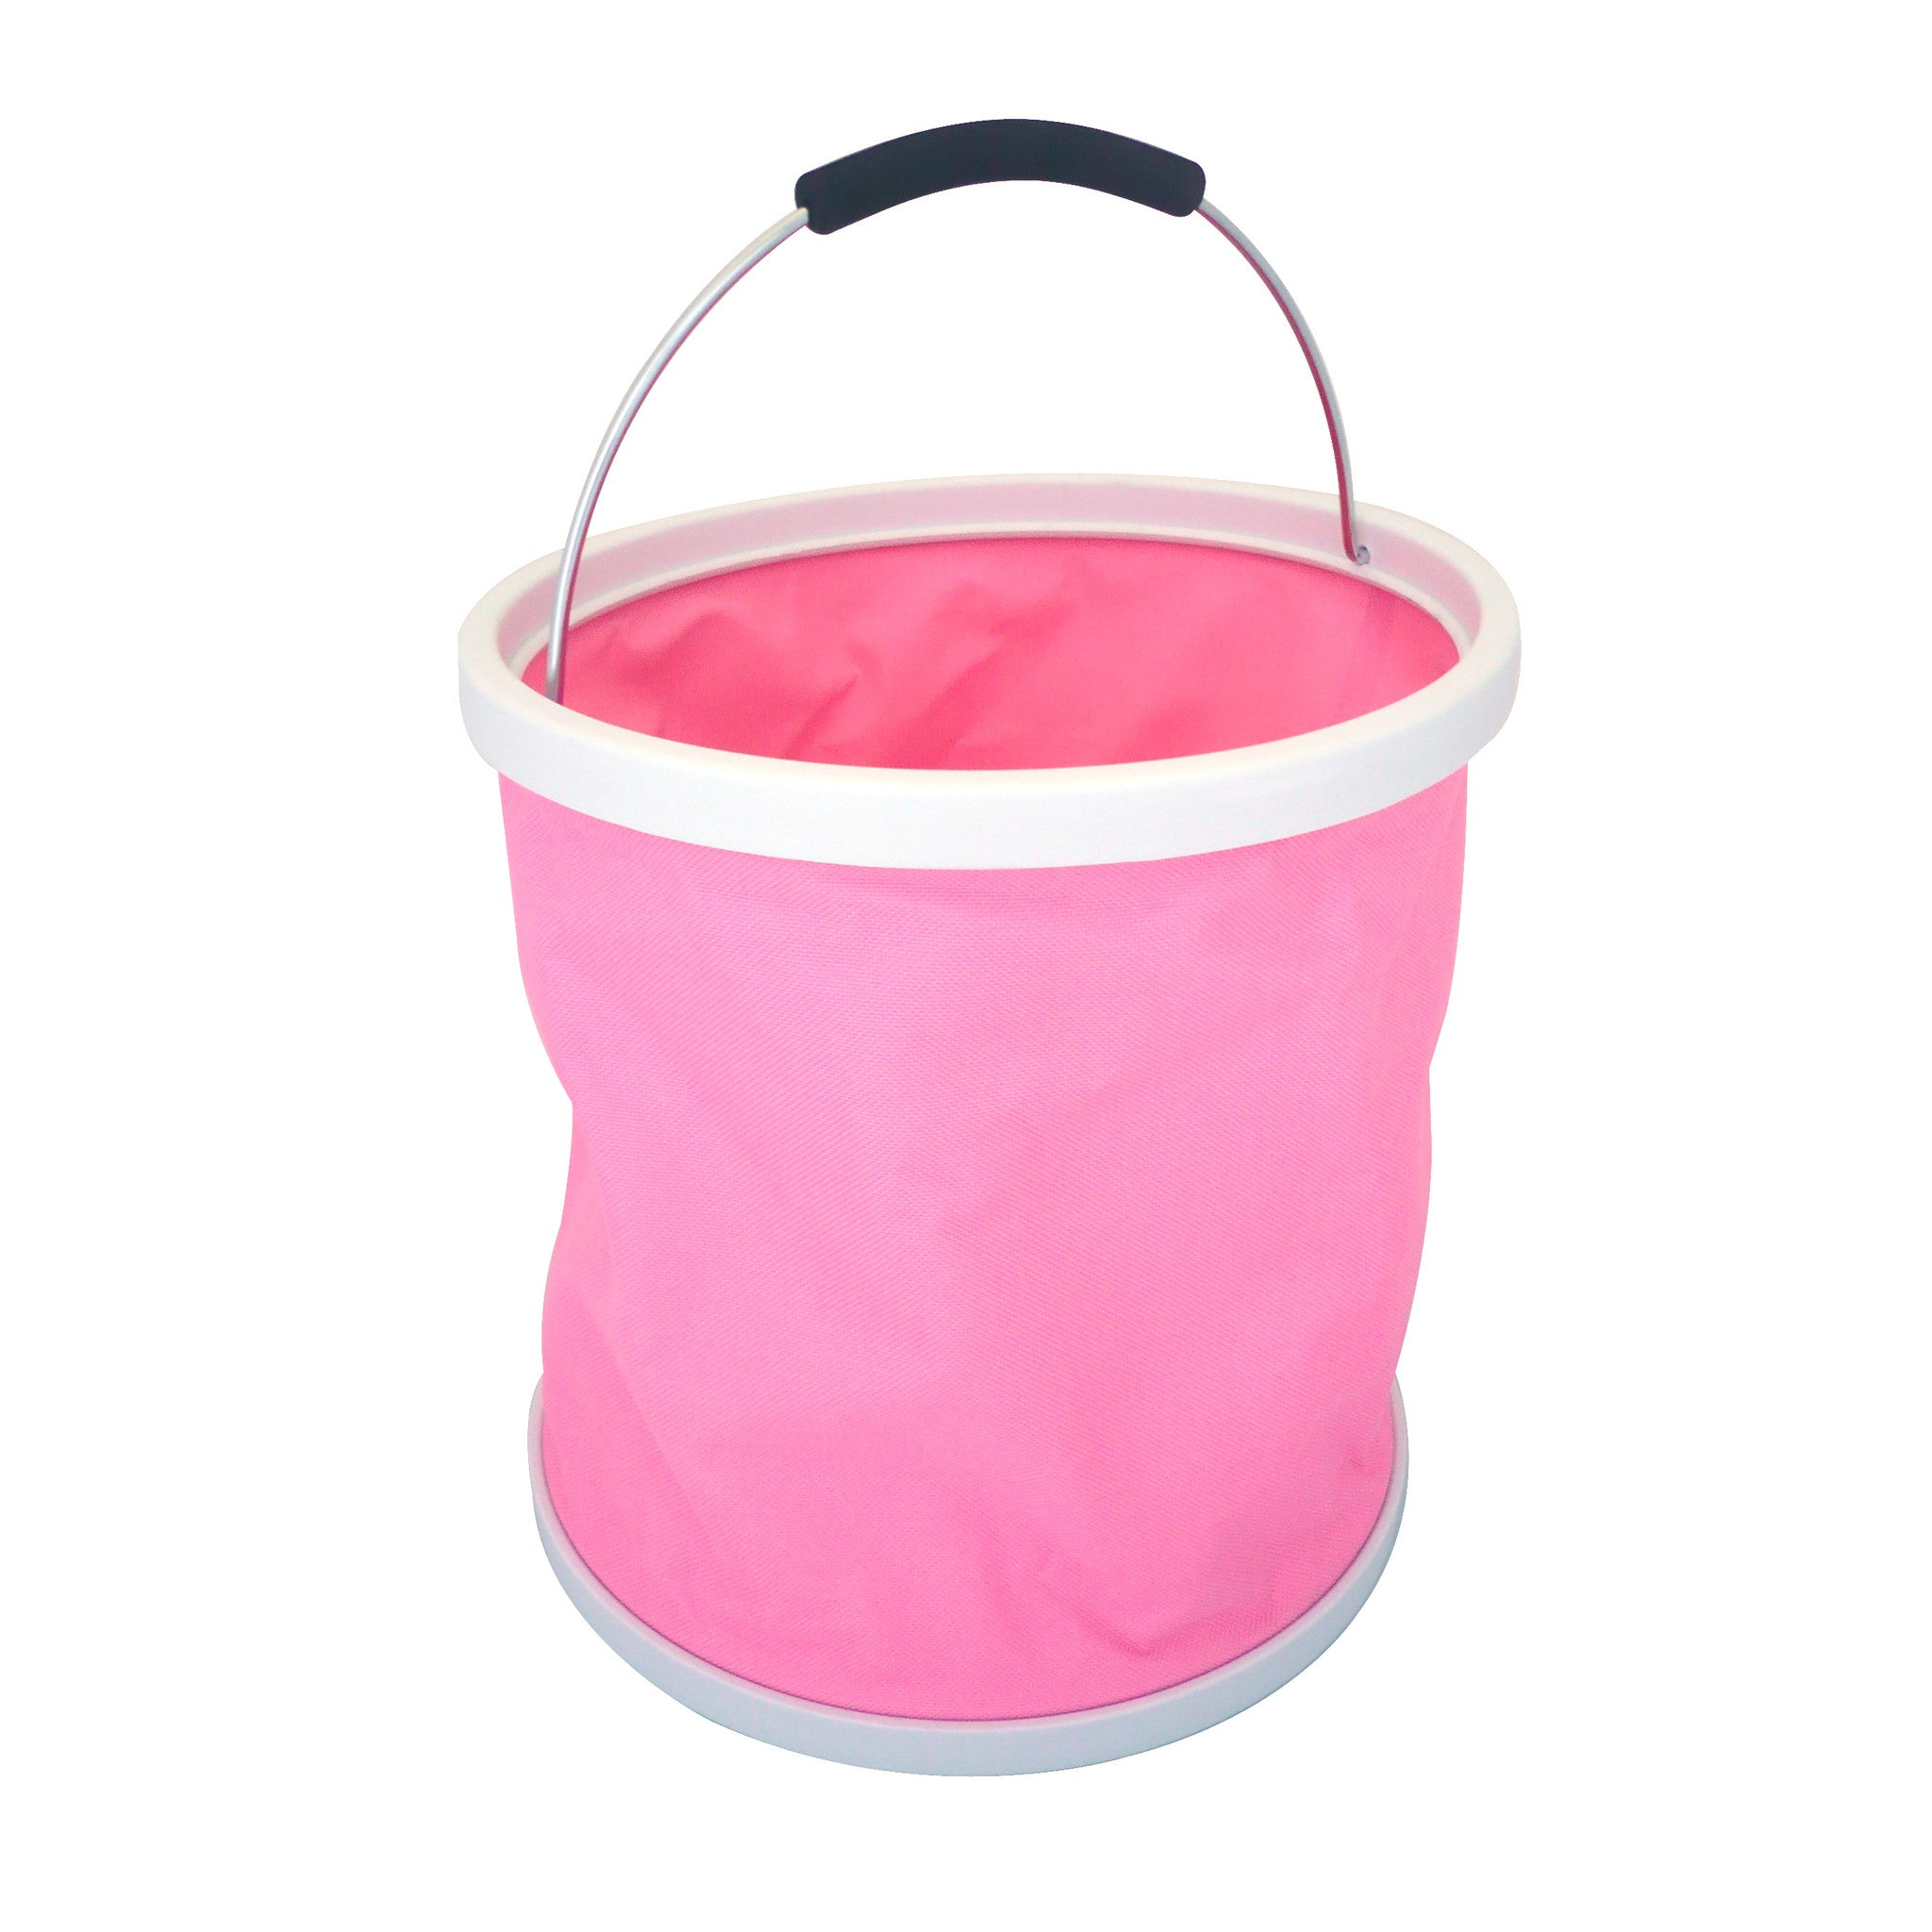 Baby Bucket ina Bag - The Potting Shed Garden Tools